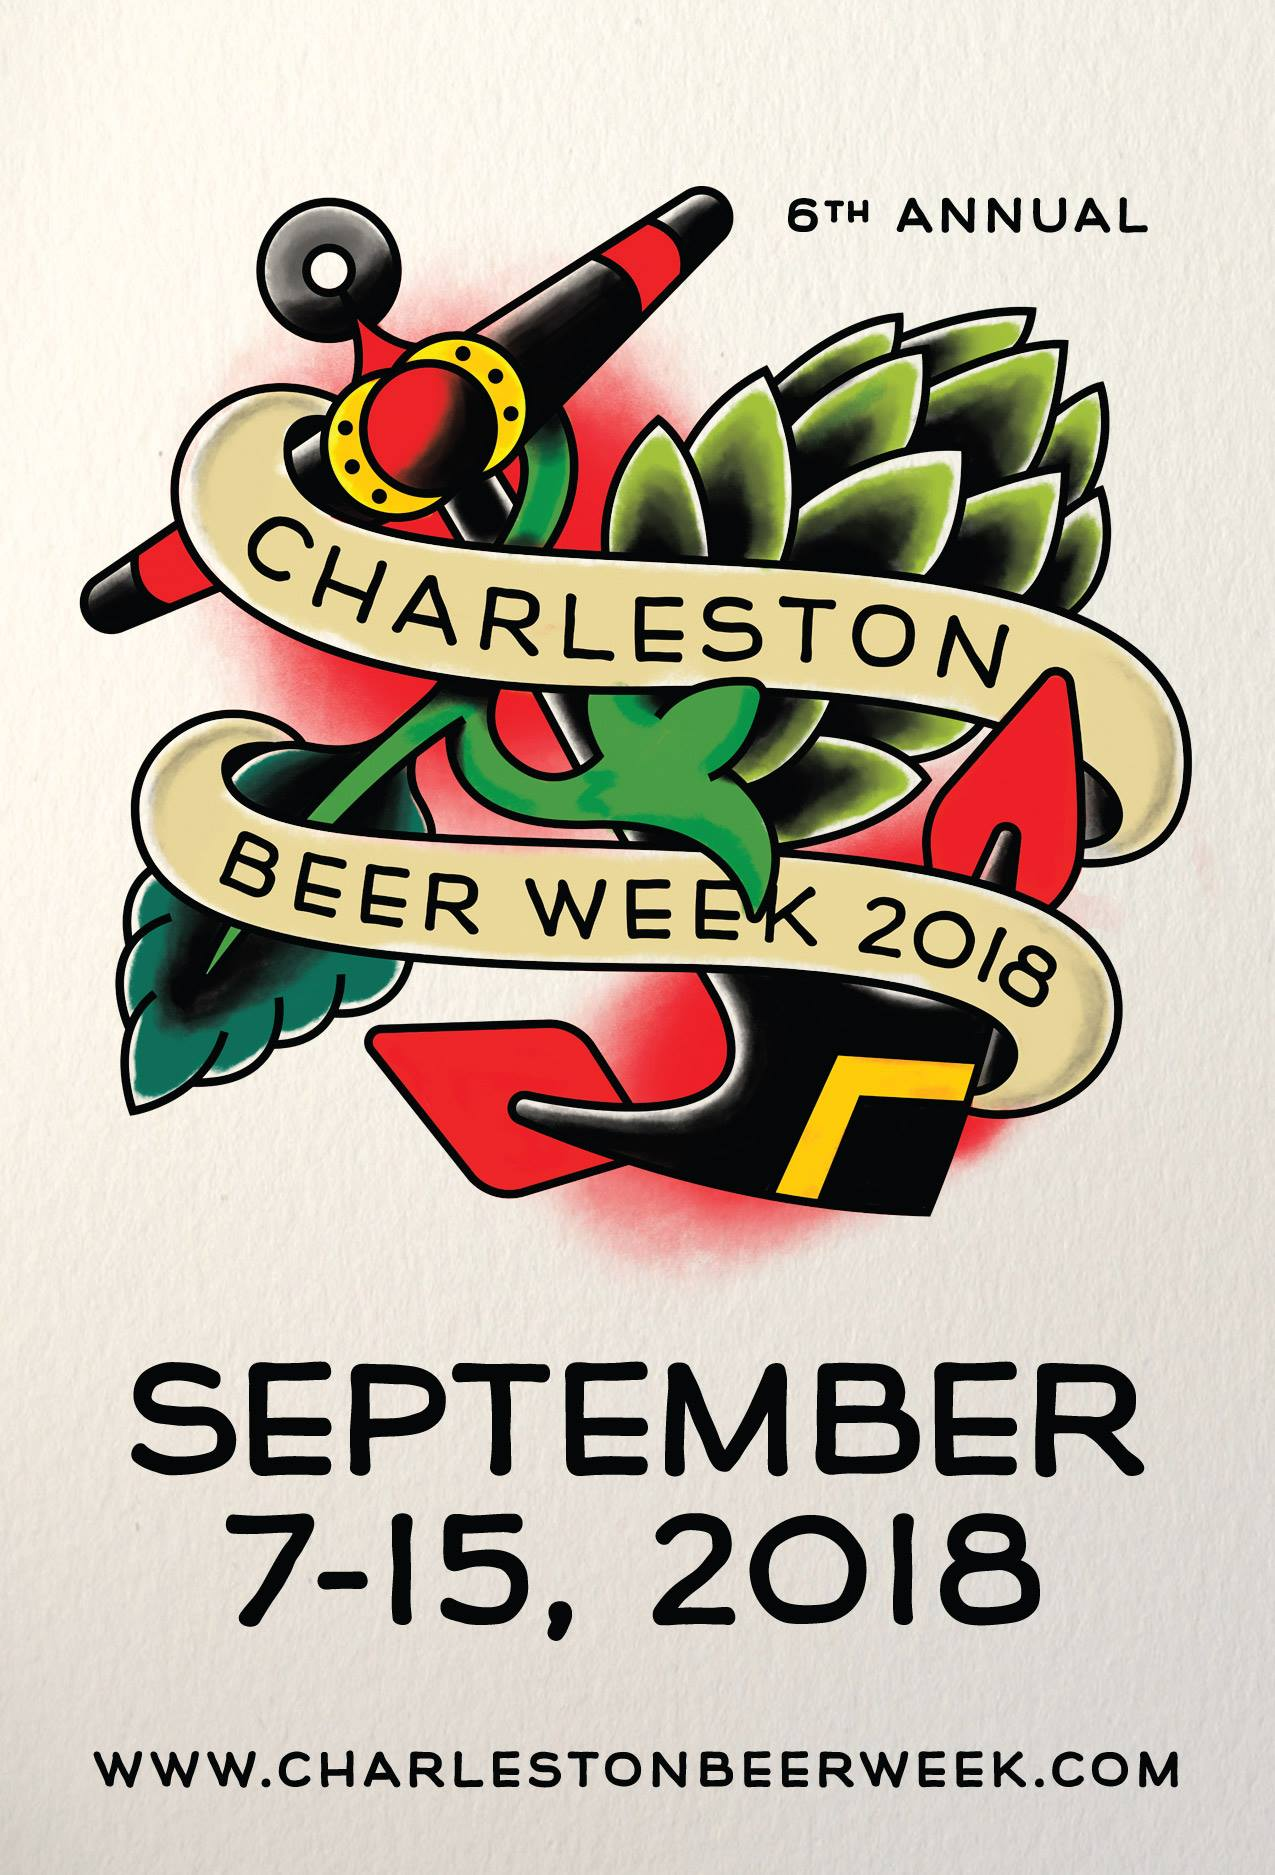 Promotional card for the 6th Annual CHS Beer Week 2018